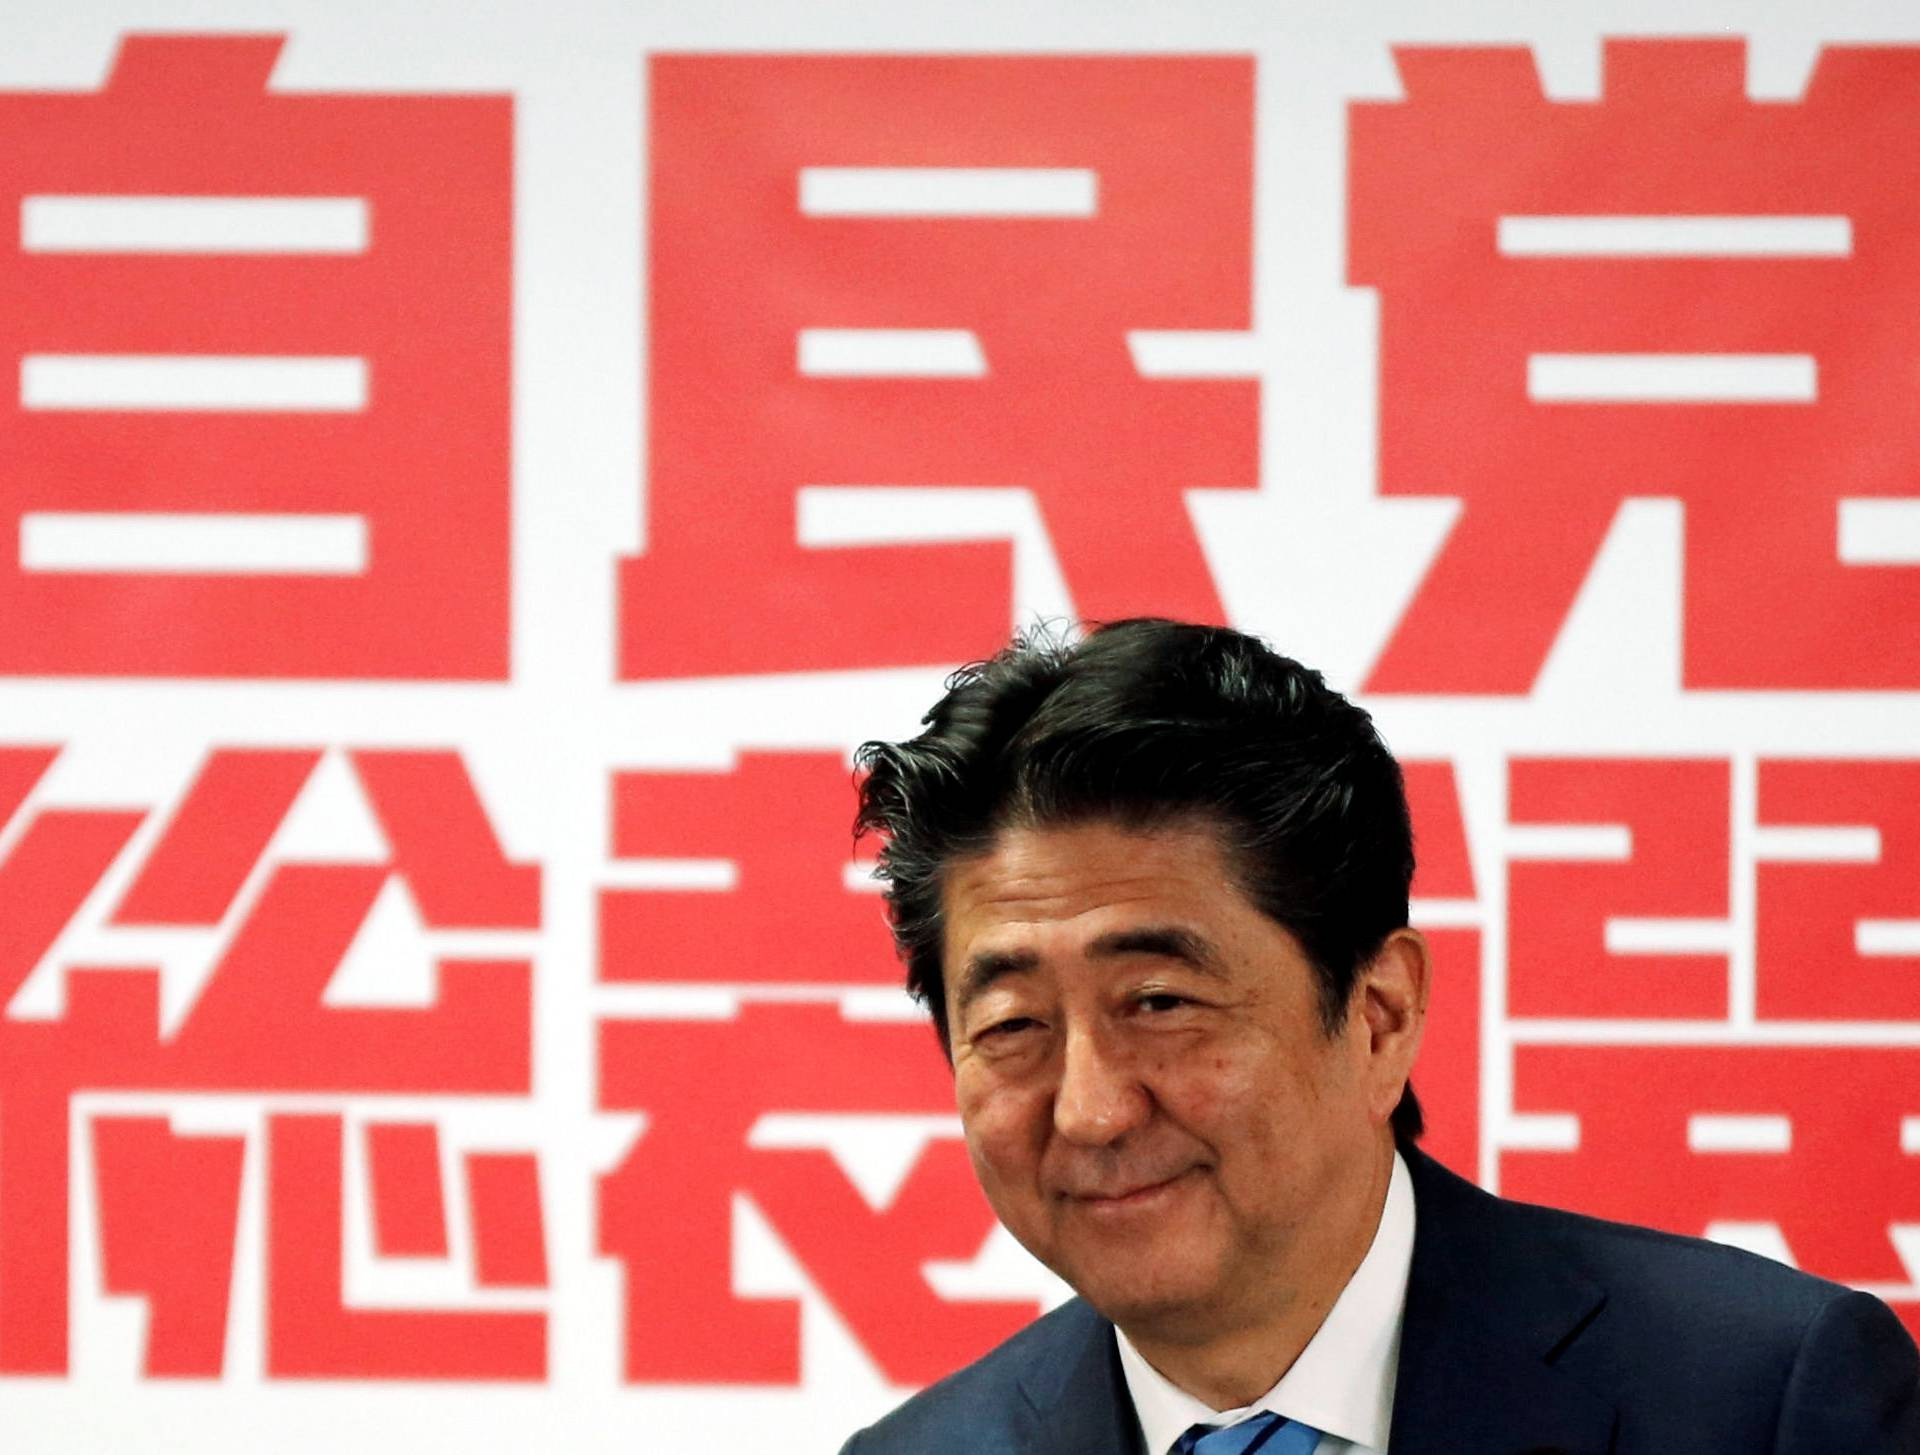 Japan's Prime Minister and ruling LDP leader Shinzo Abe attends a joint news conference for the party leader election at their headquarters in Tokyo